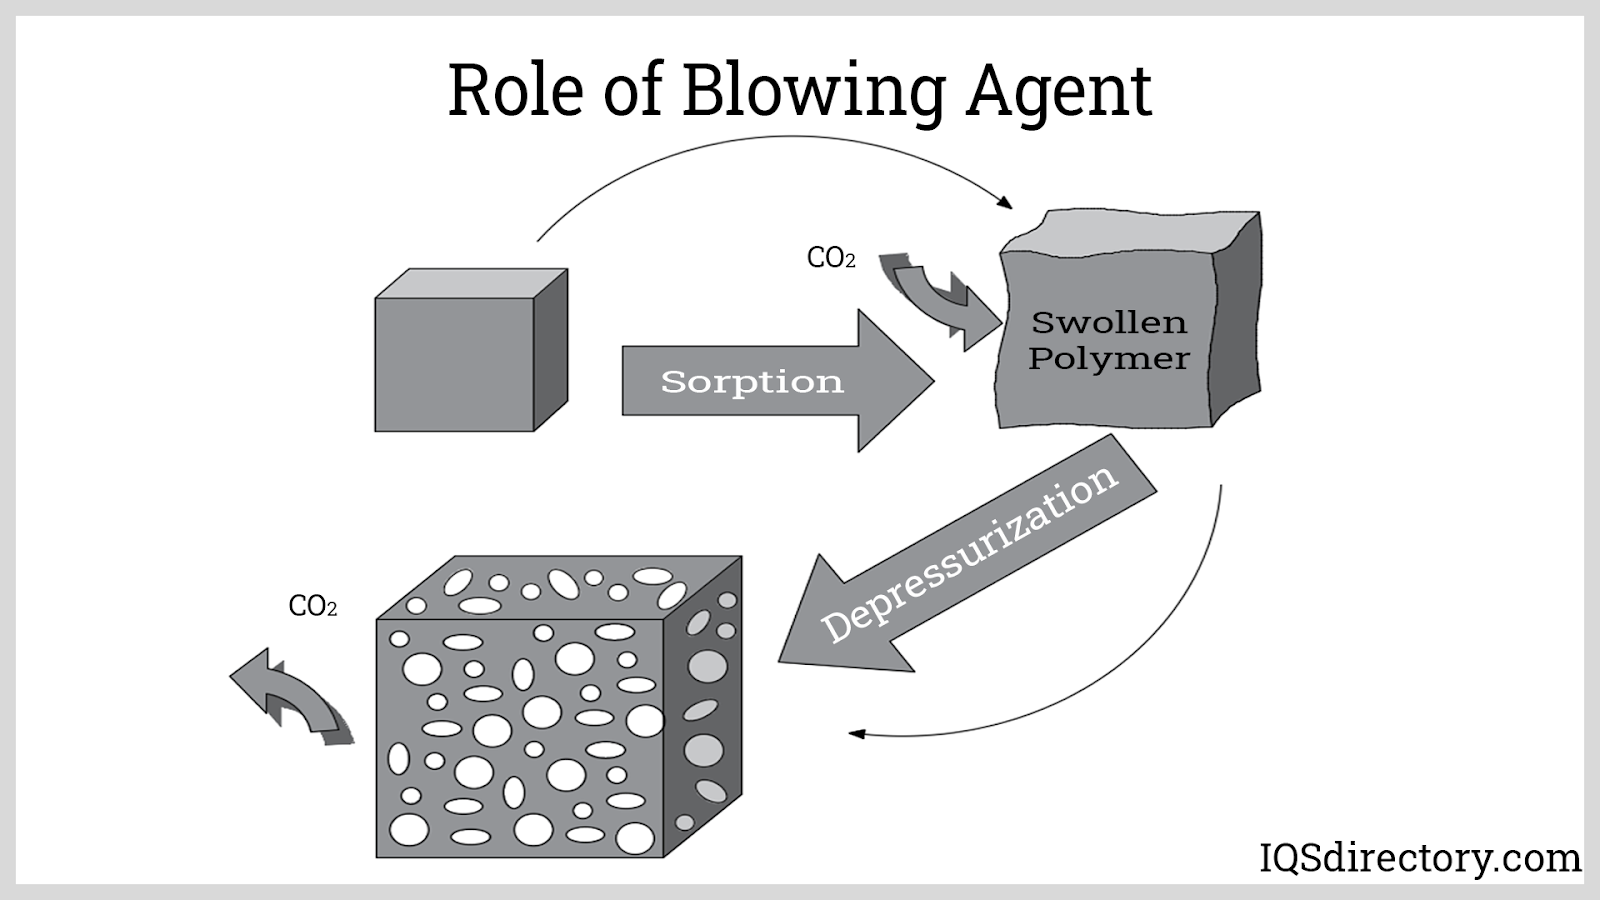 Role of Blowing Agent